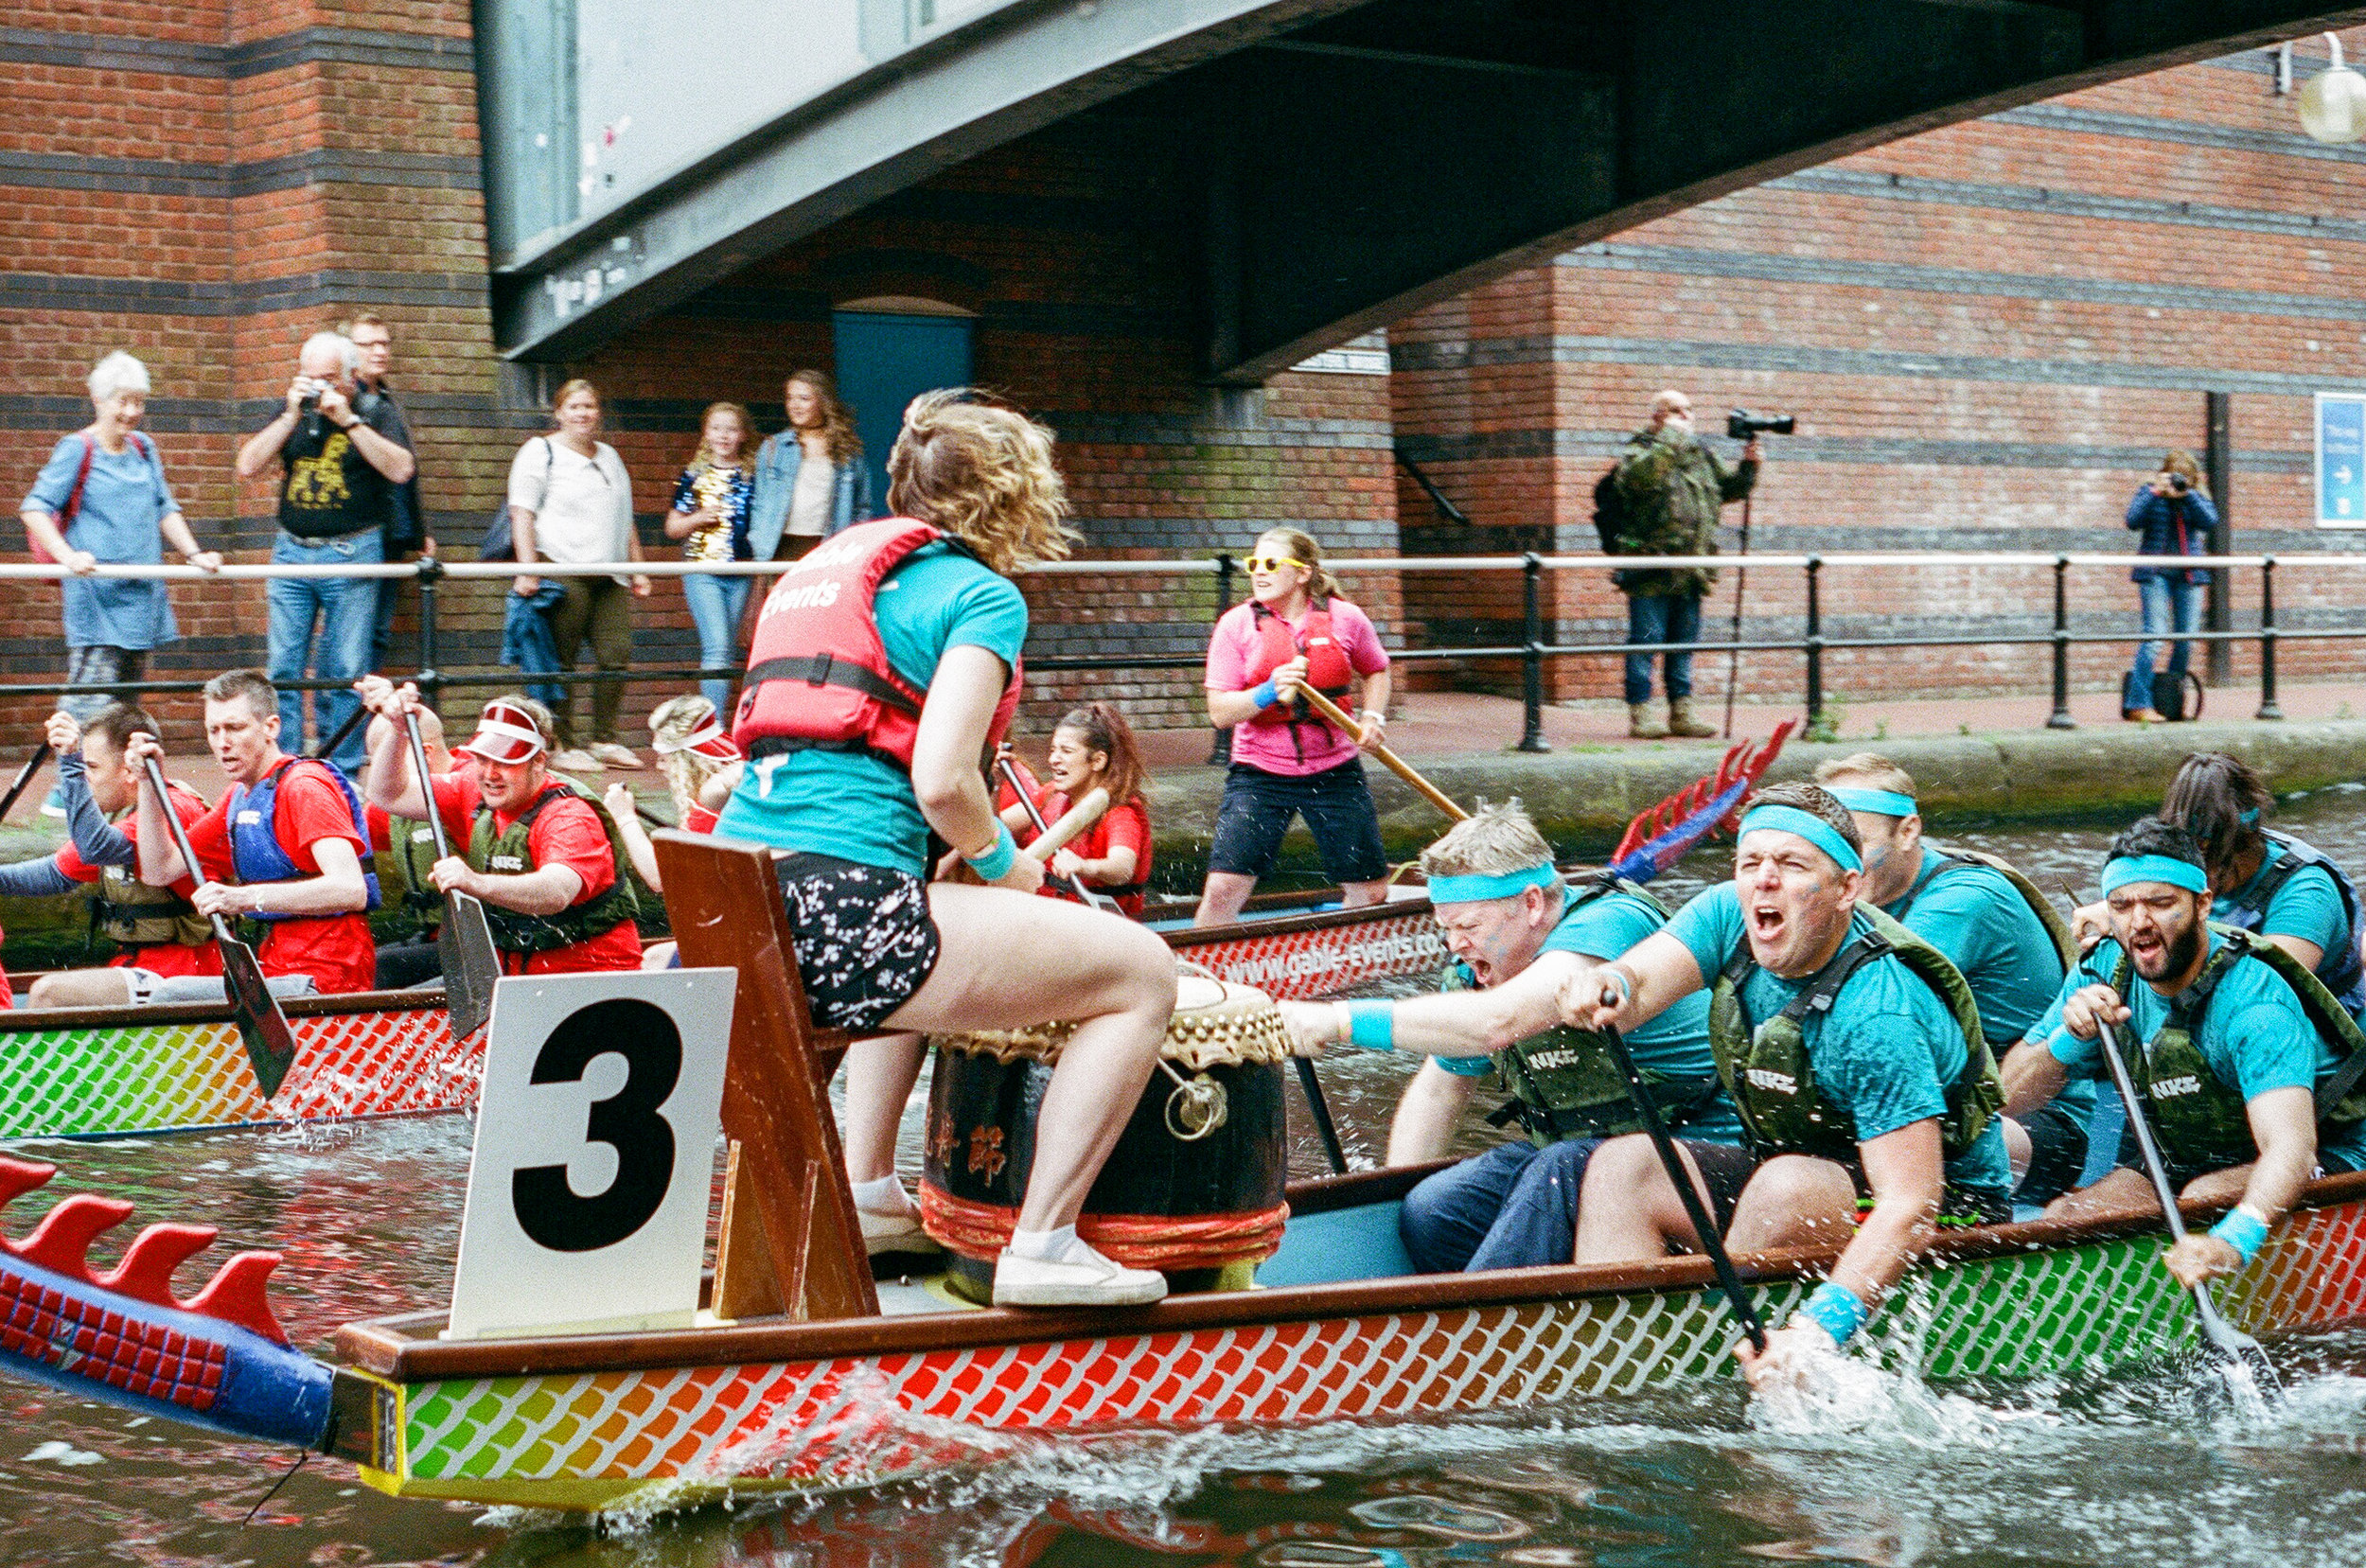 Brindleyplace Dragon Boat Race - Clifford Darby 2017